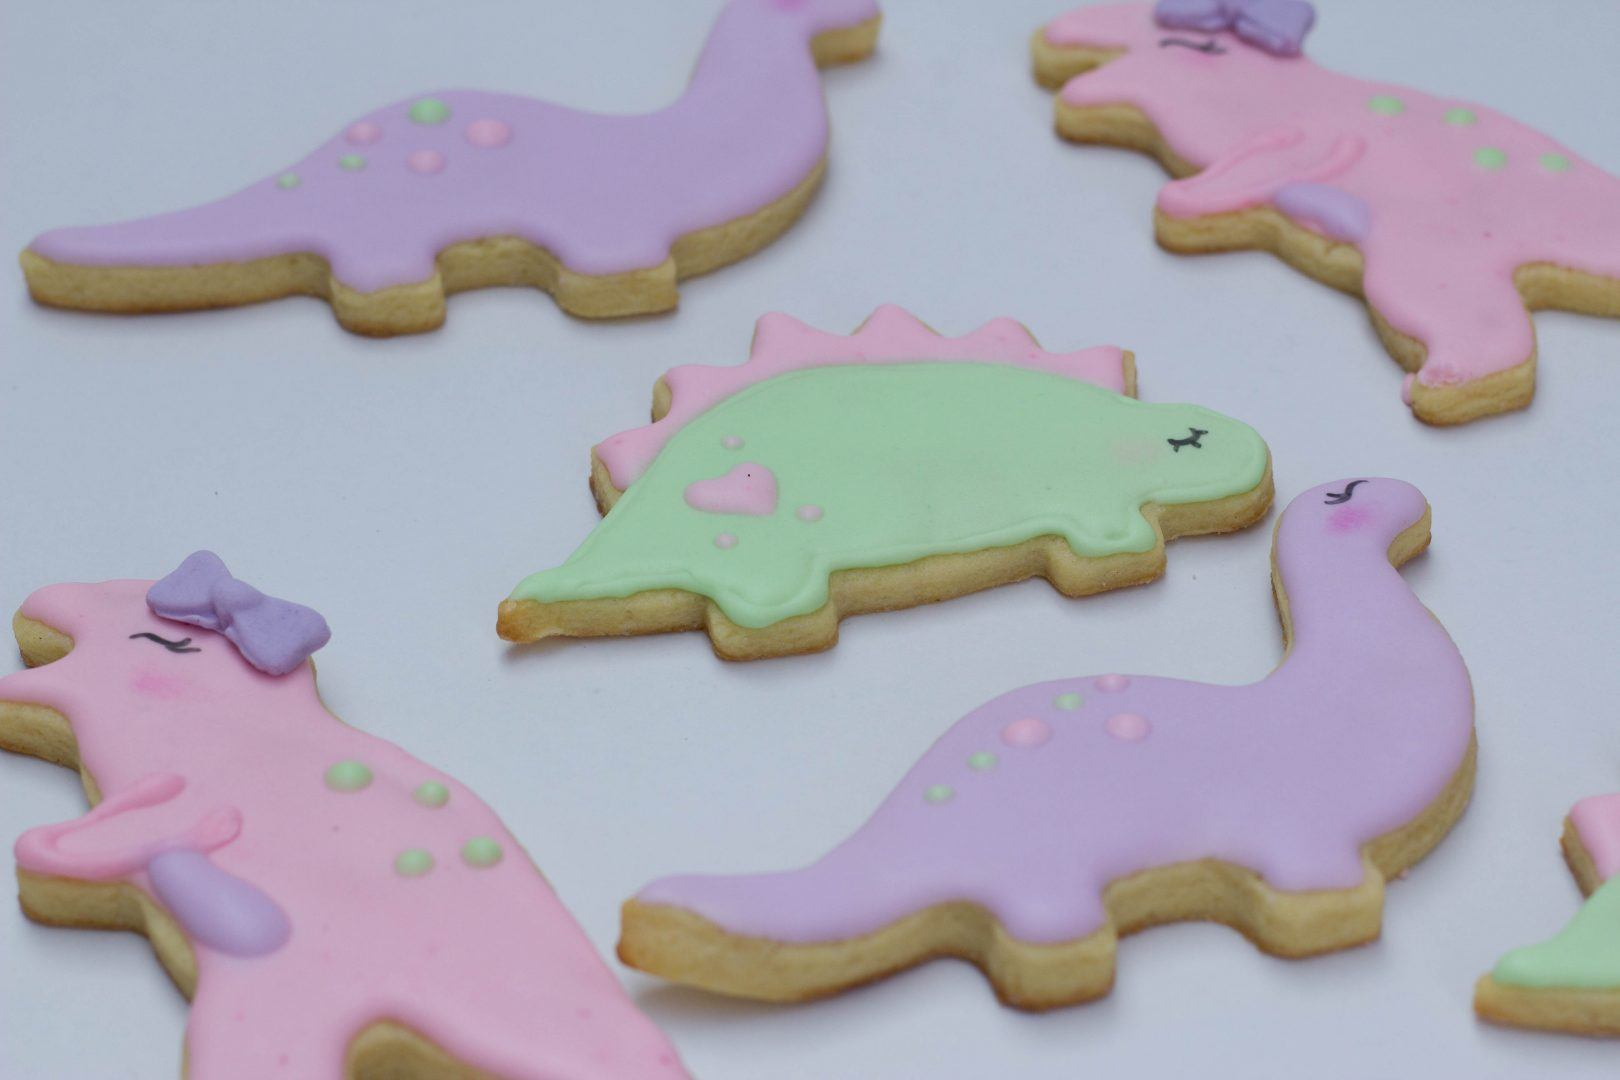 Make dinosaur cookies from store bought cookie mix